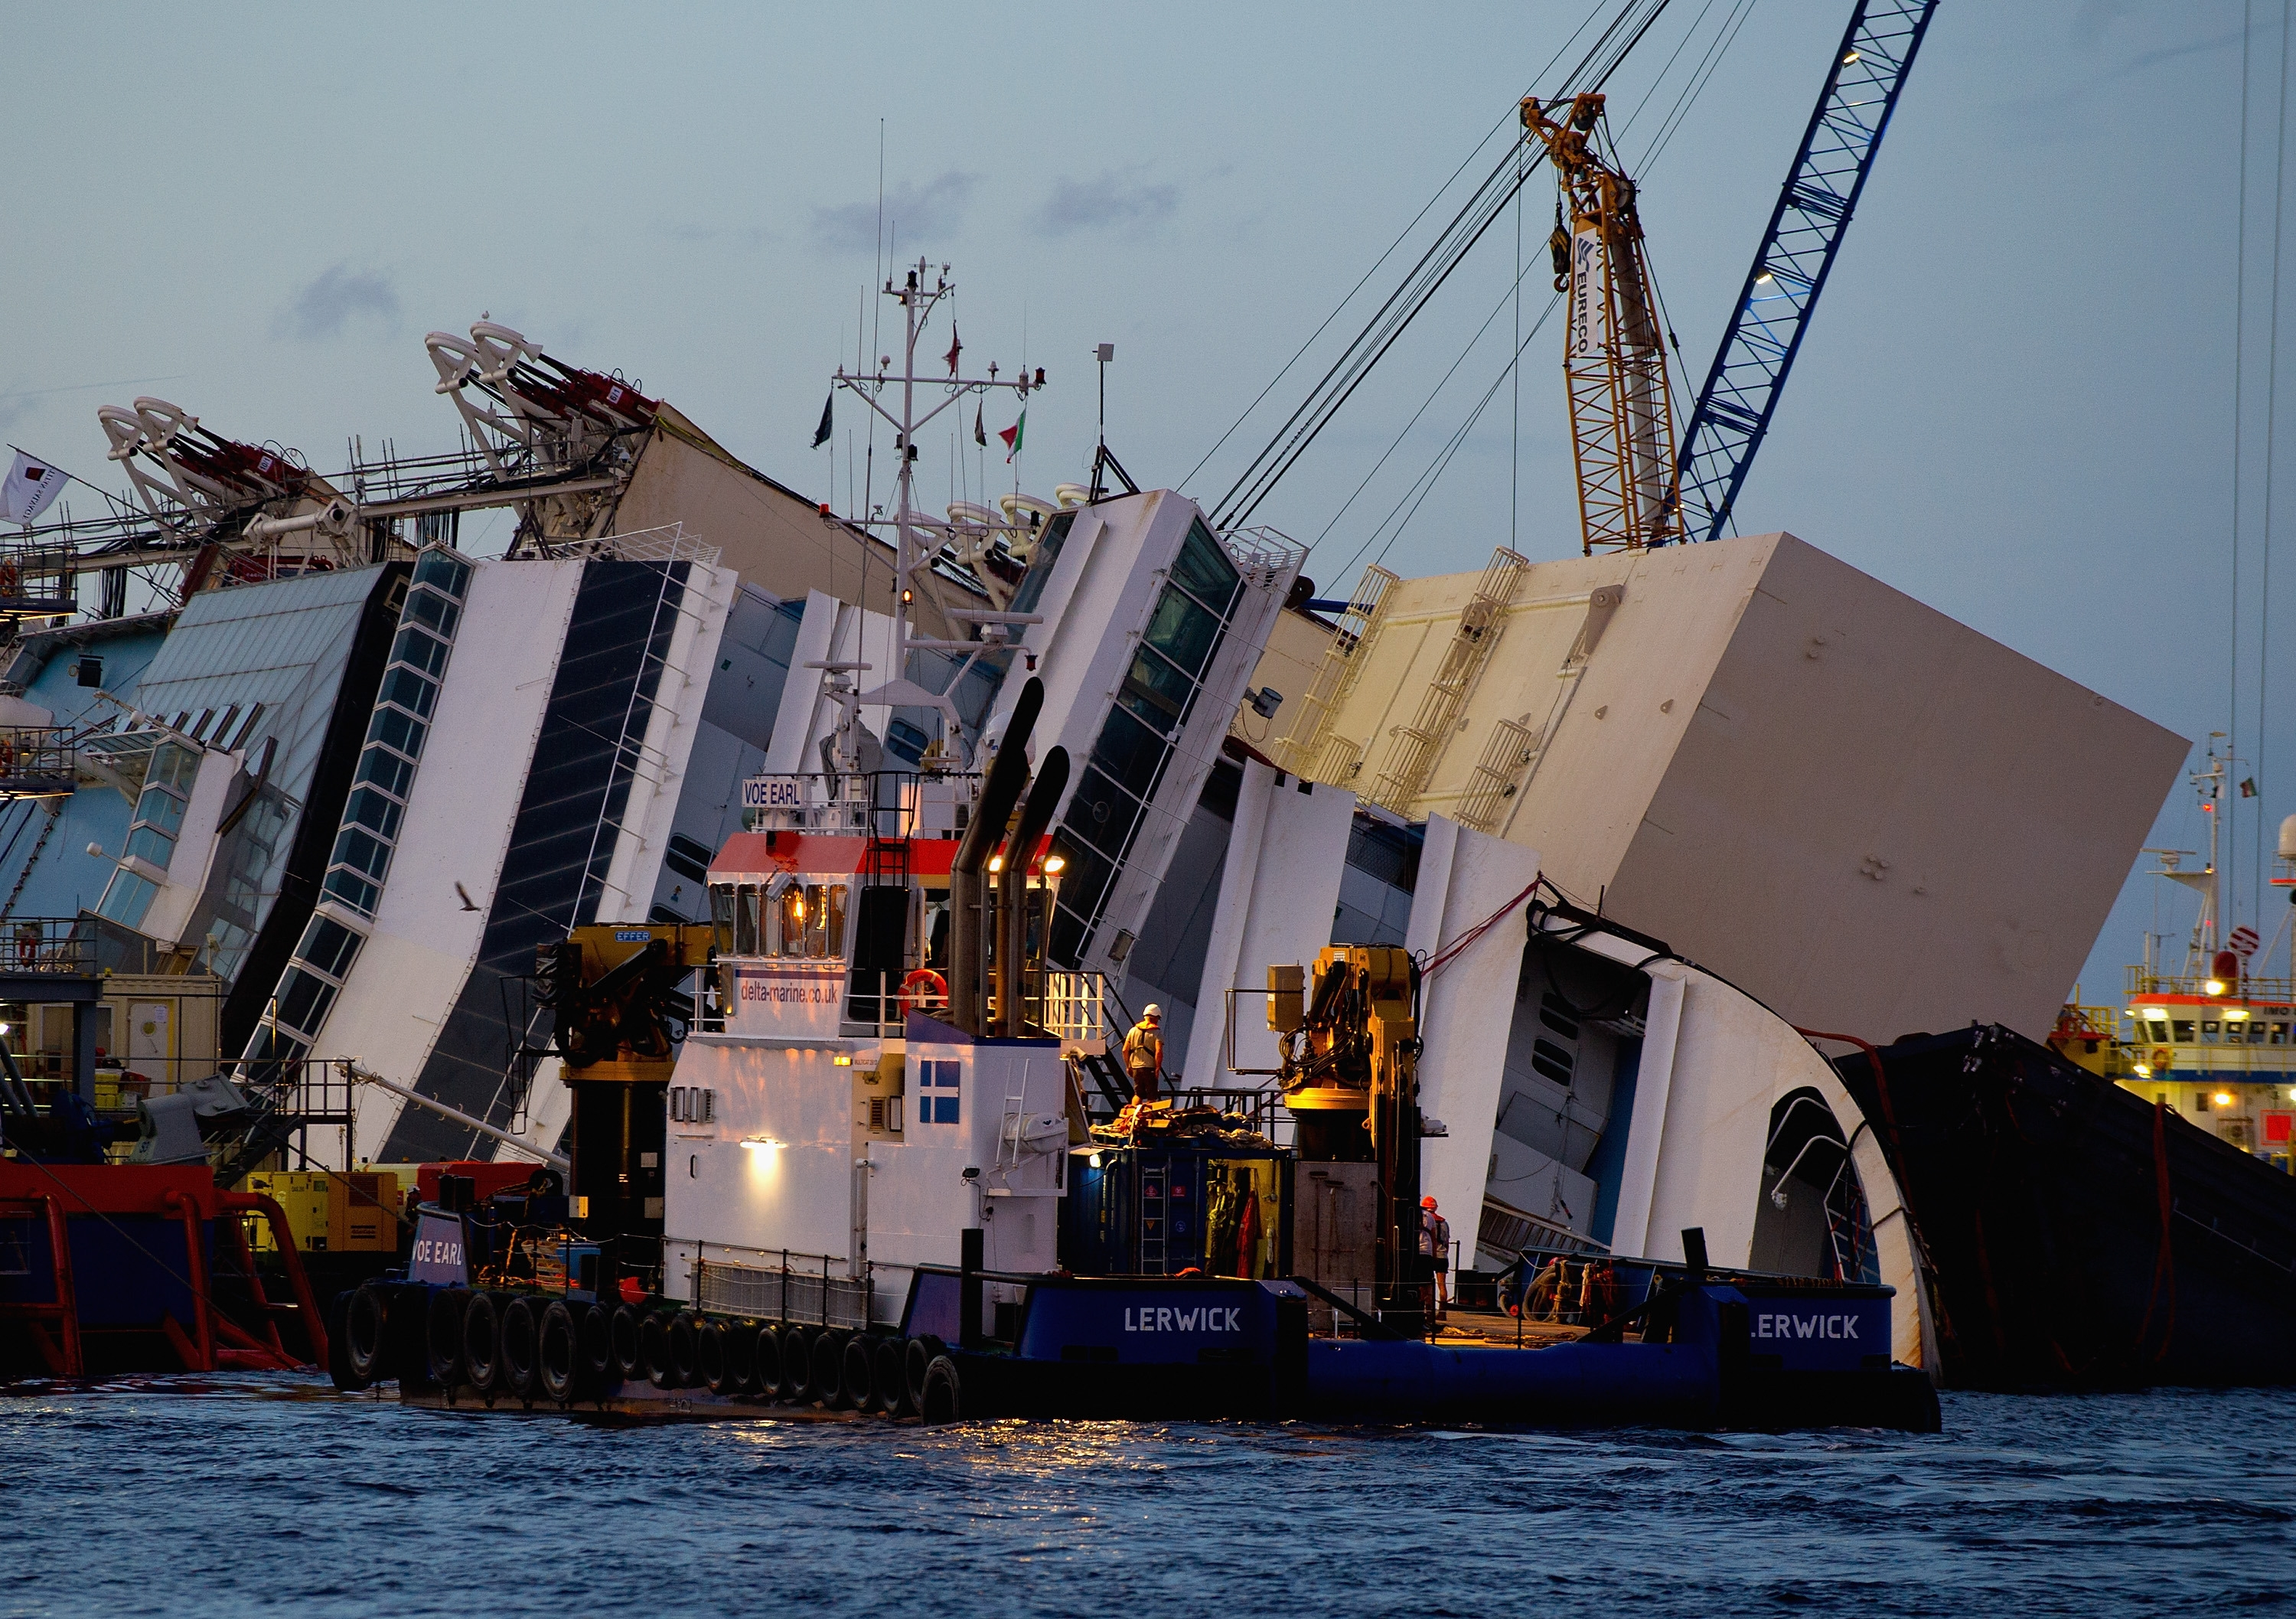 The attempt to hoist the wrecked Costa Concordia off the Italian island of Giglio will be attempted Monday. The ship has lain on its side since running aground 20 months ago.